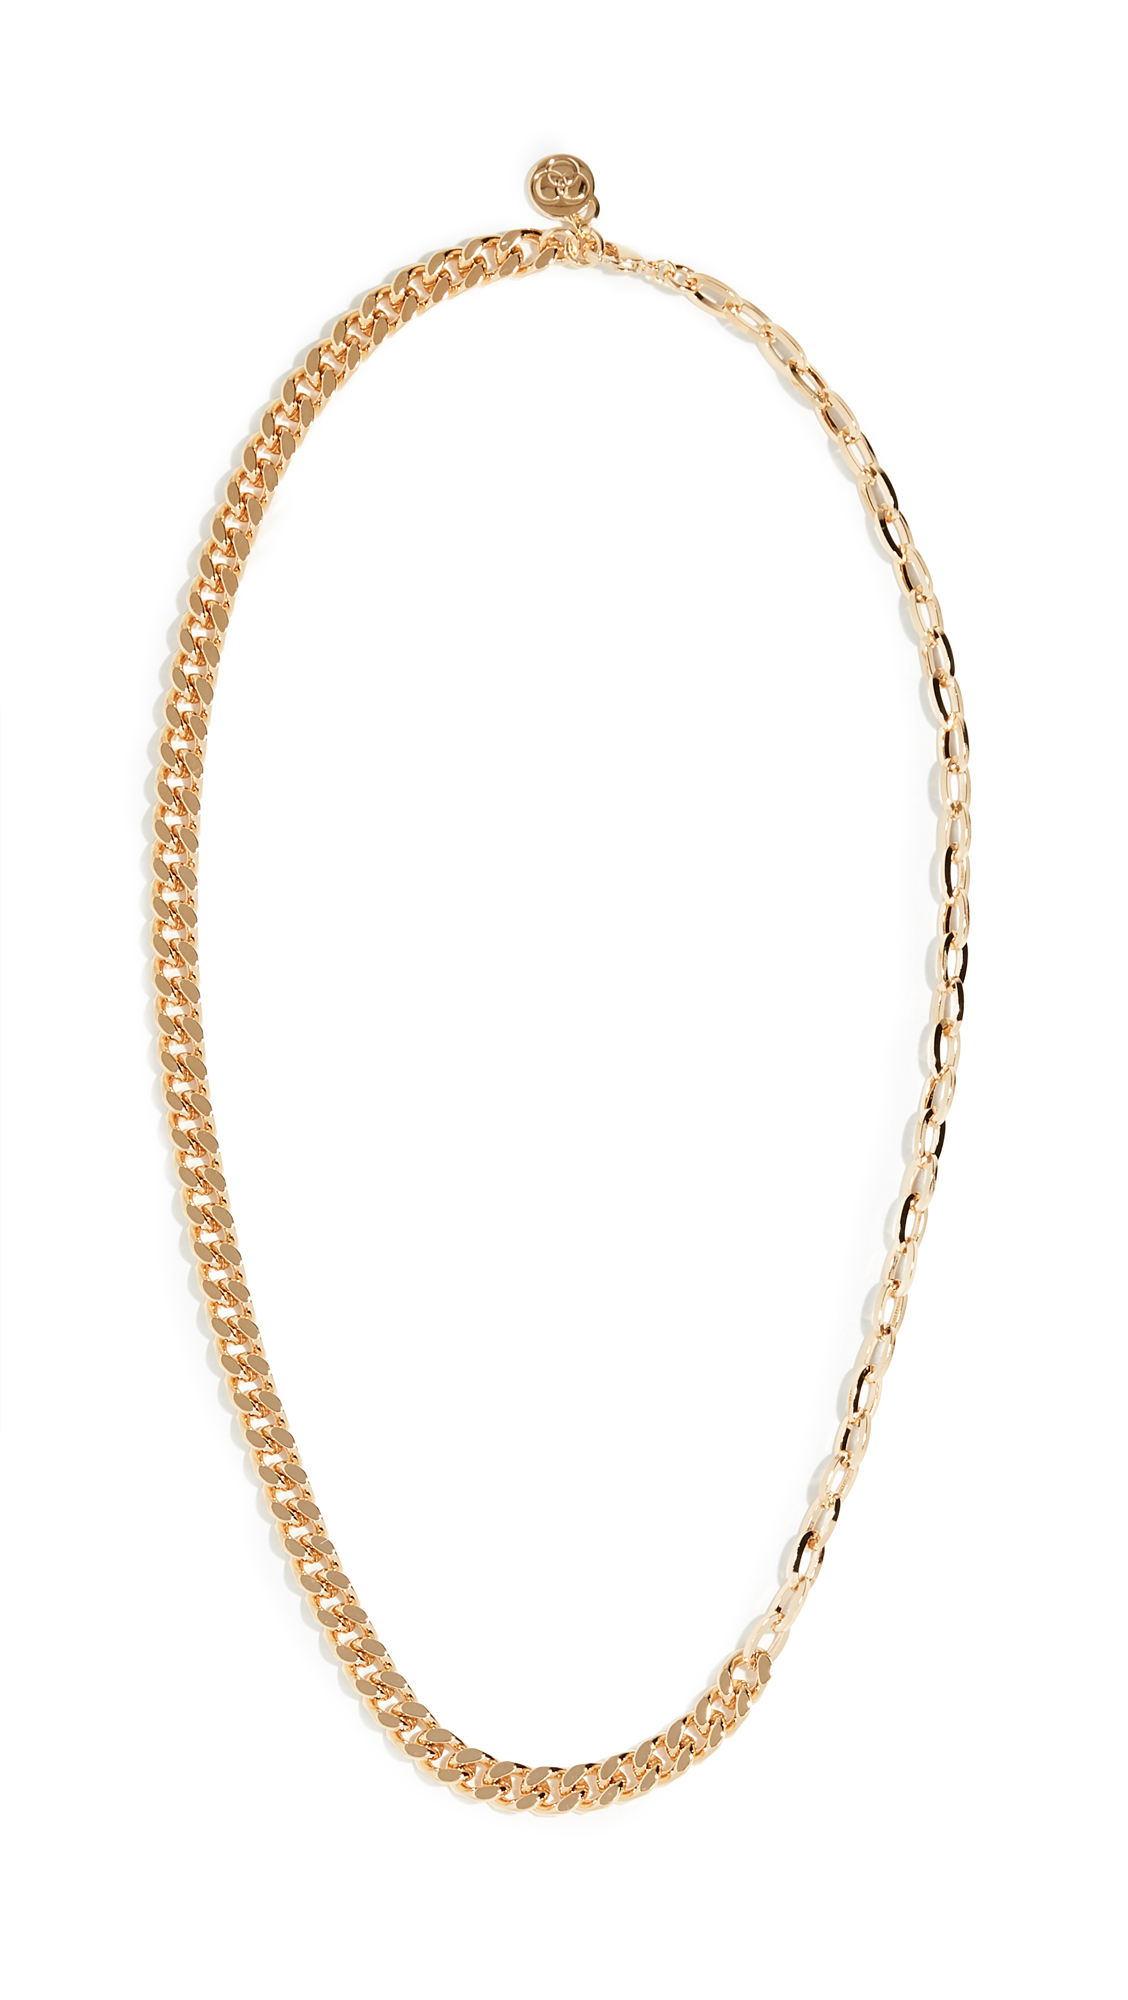 CLOVERPOST Spencer Necklace in Gold